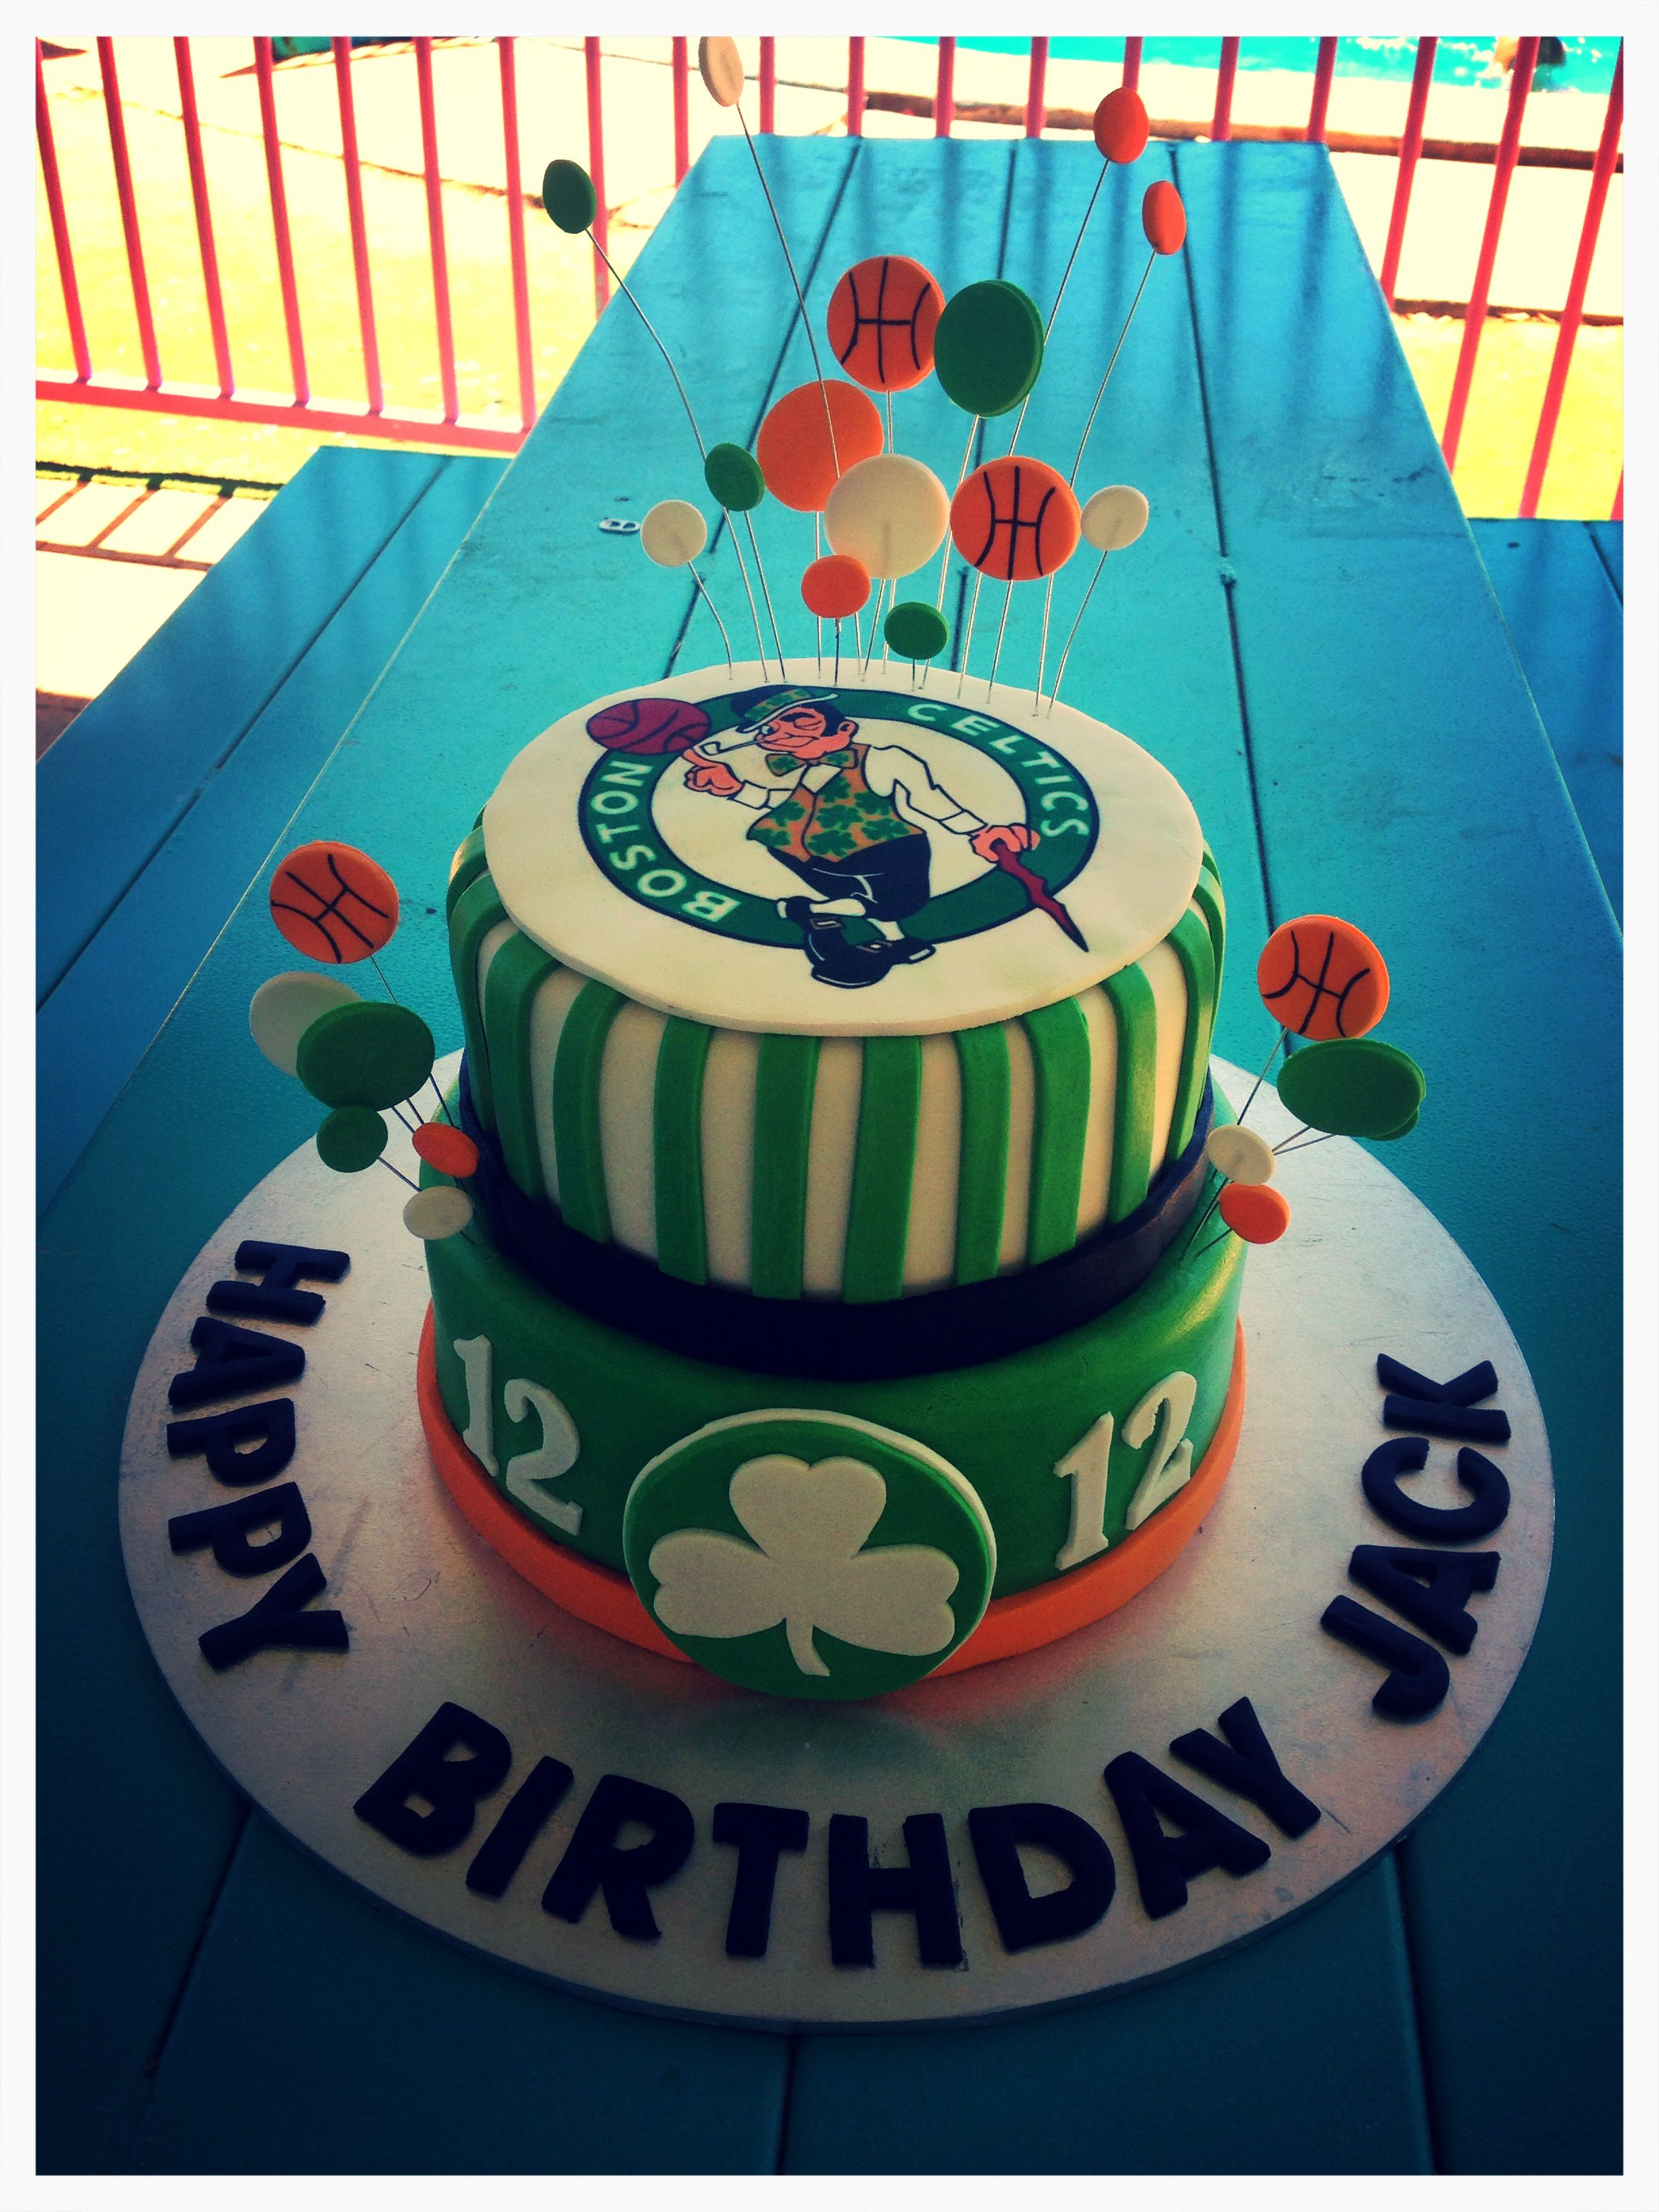 Stupendous Birthday Cake Boston Celtics Basketball Birthday Cake New Personalised Birthday Cards Paralily Jamesorg